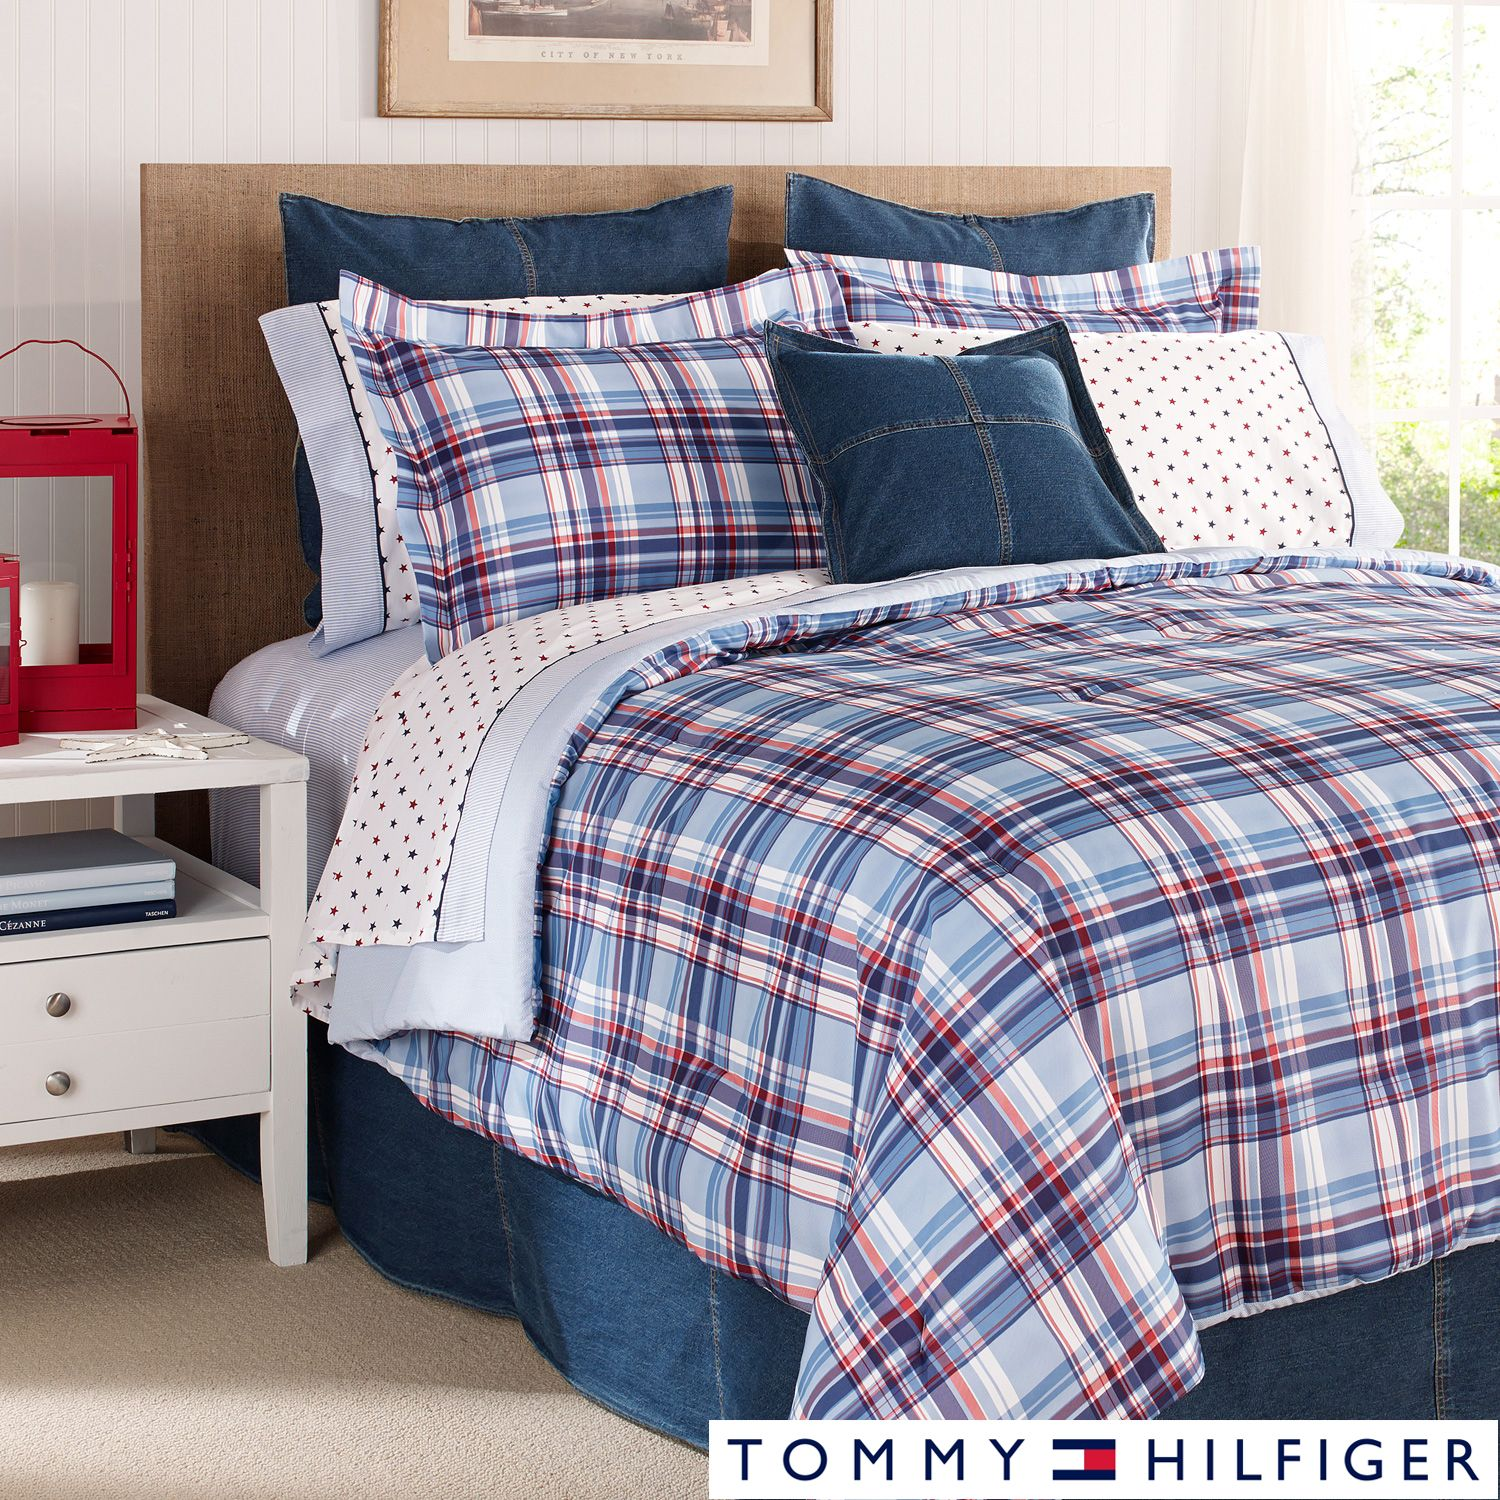 Tommy Hilfiger Lawrence 3 piece forter Set by Tommy Hilfiger